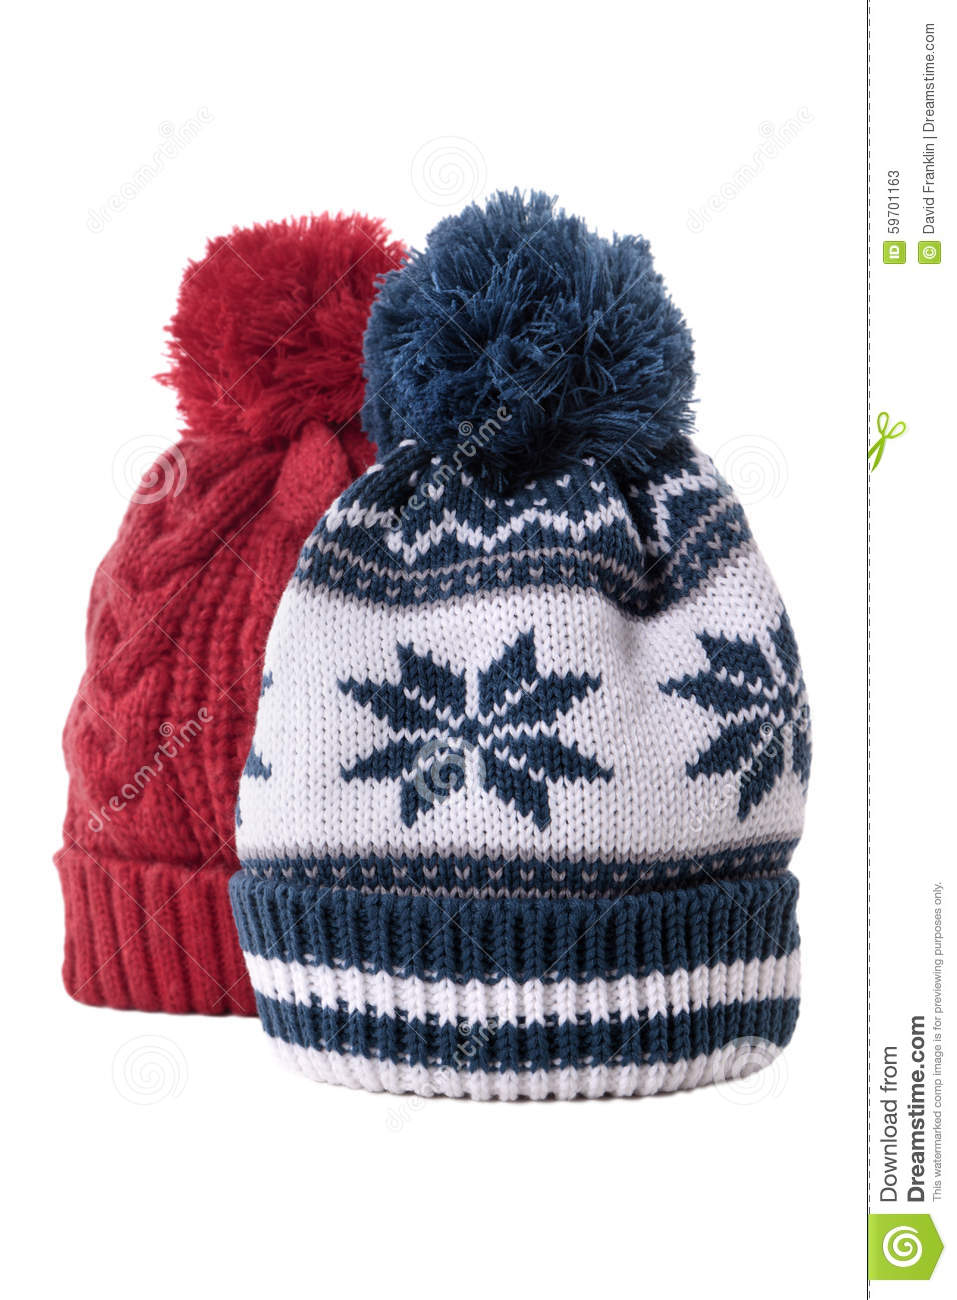 aed7fa26797 Two Winter Wool Knit Hats Isolated On White Background Stock Image ...